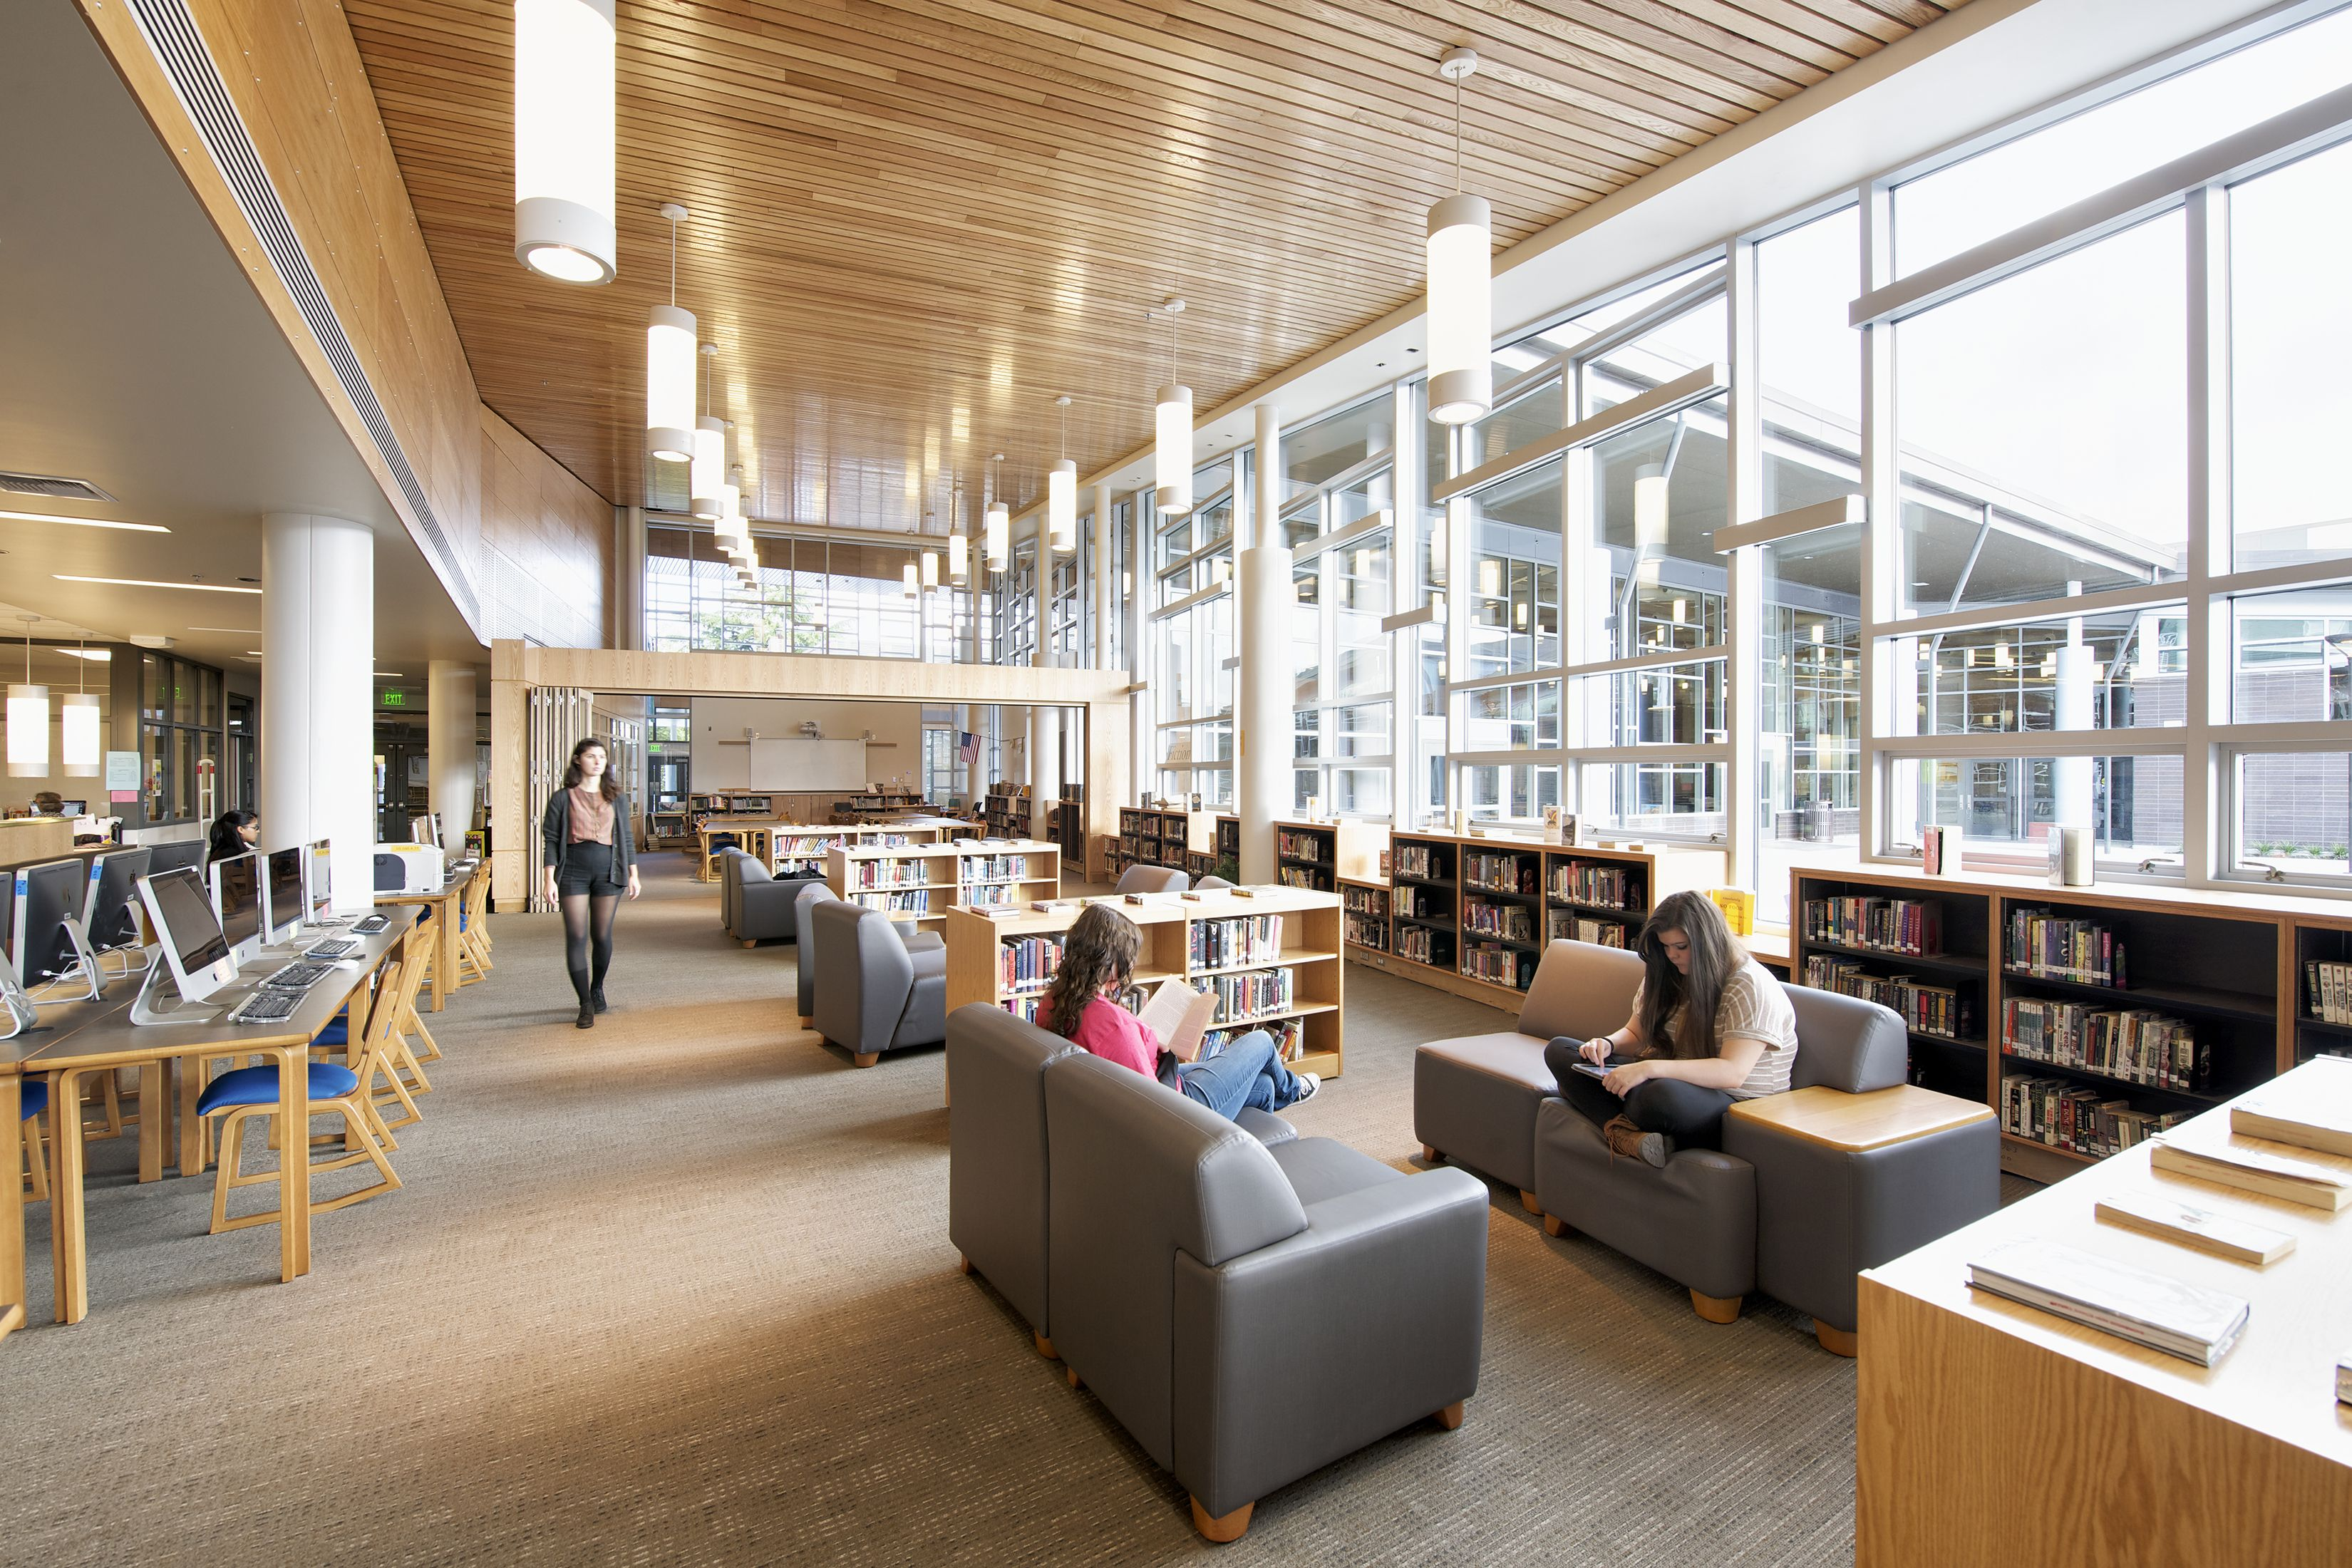 The library at Shorewood HS is filled